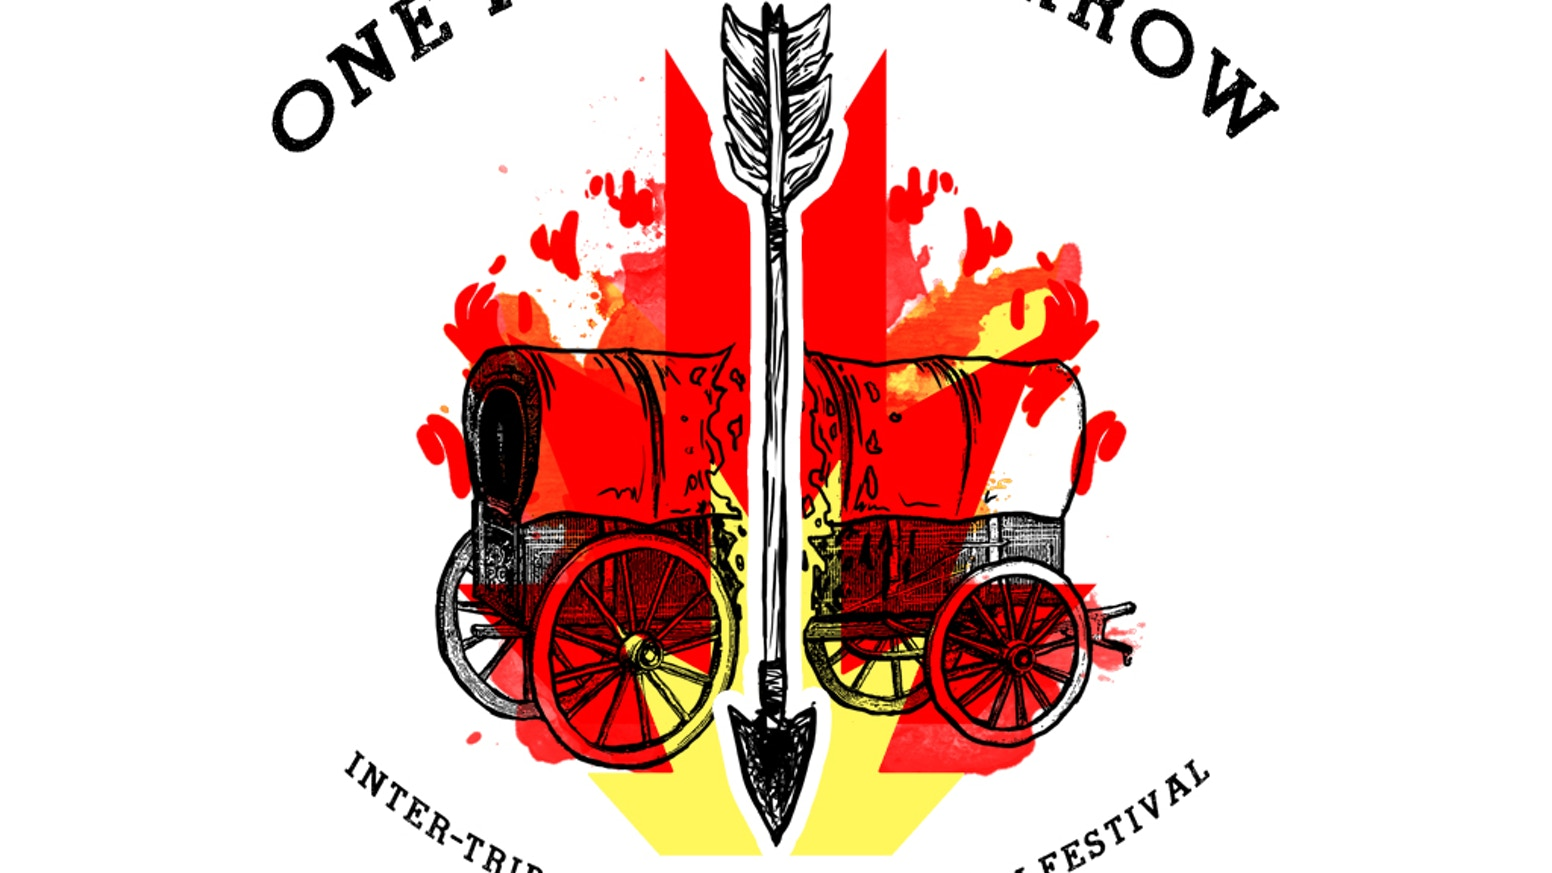 One Flaming Arrow is a 12-day festival bringing together radical Indigenous voices from Native america.Join us as we introduce this critical festival in the Indigenous lands of the Chinook (Portland, OR).June 2nd - 14th, 2015.